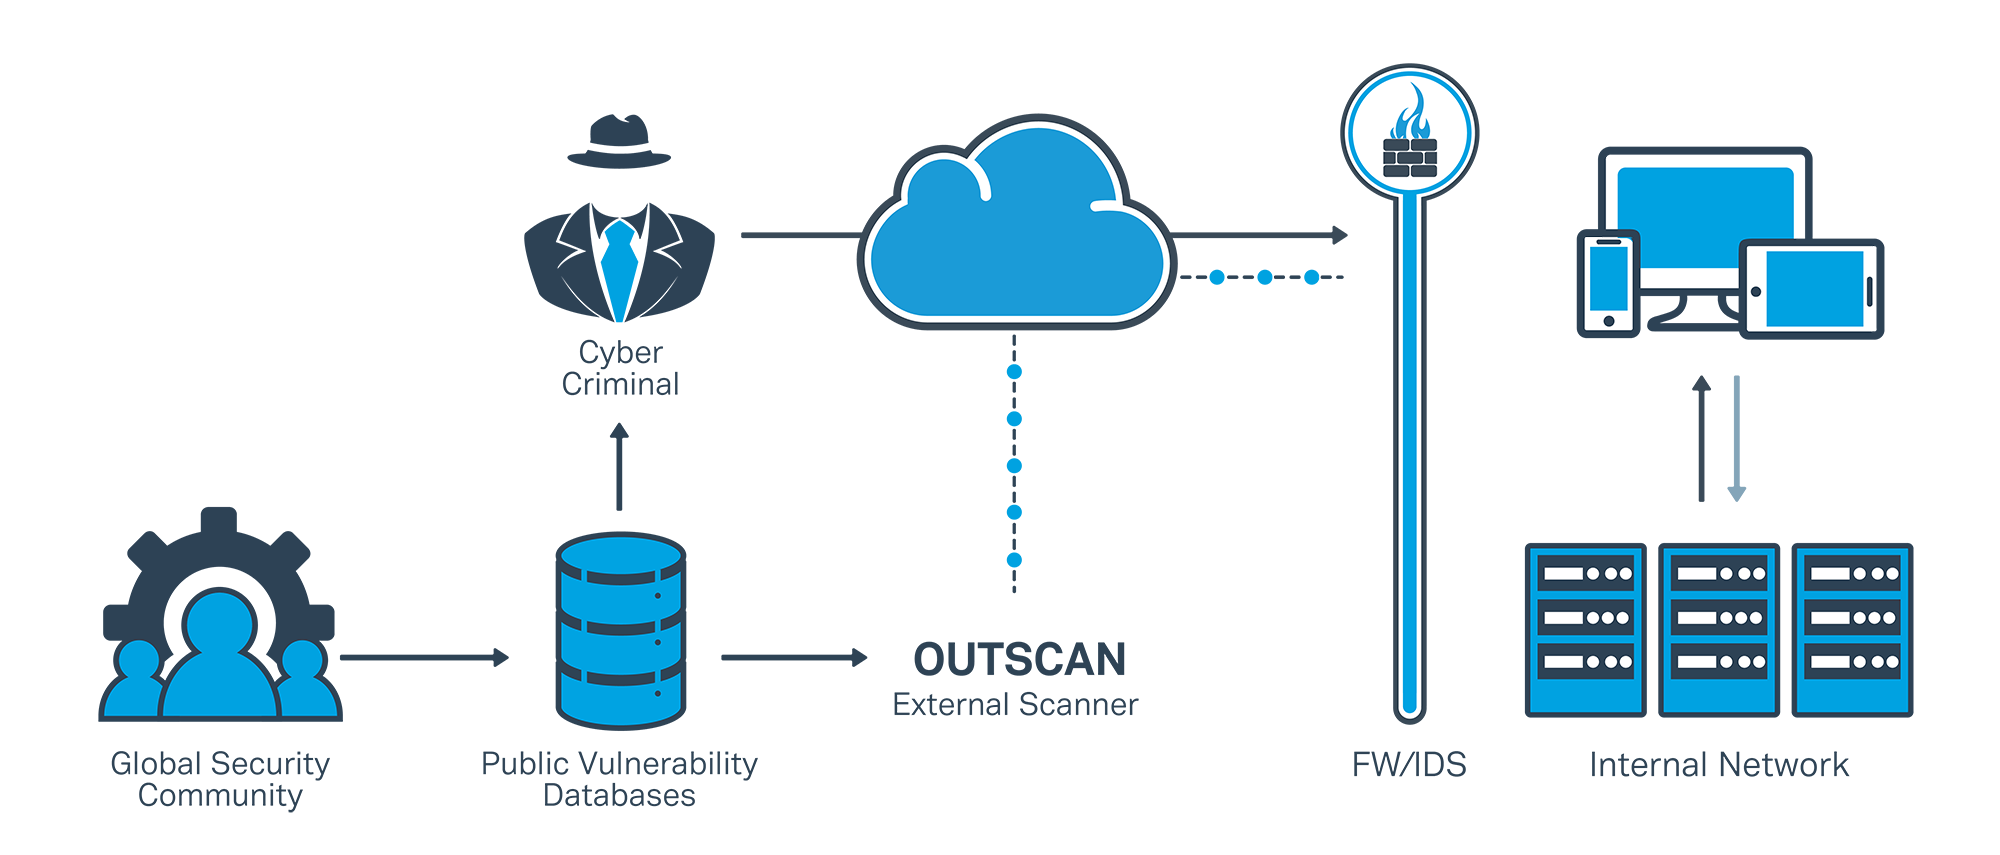 OUTSCAN Demo - OUTSCAN- Vulnerability Management solution for securing external networks